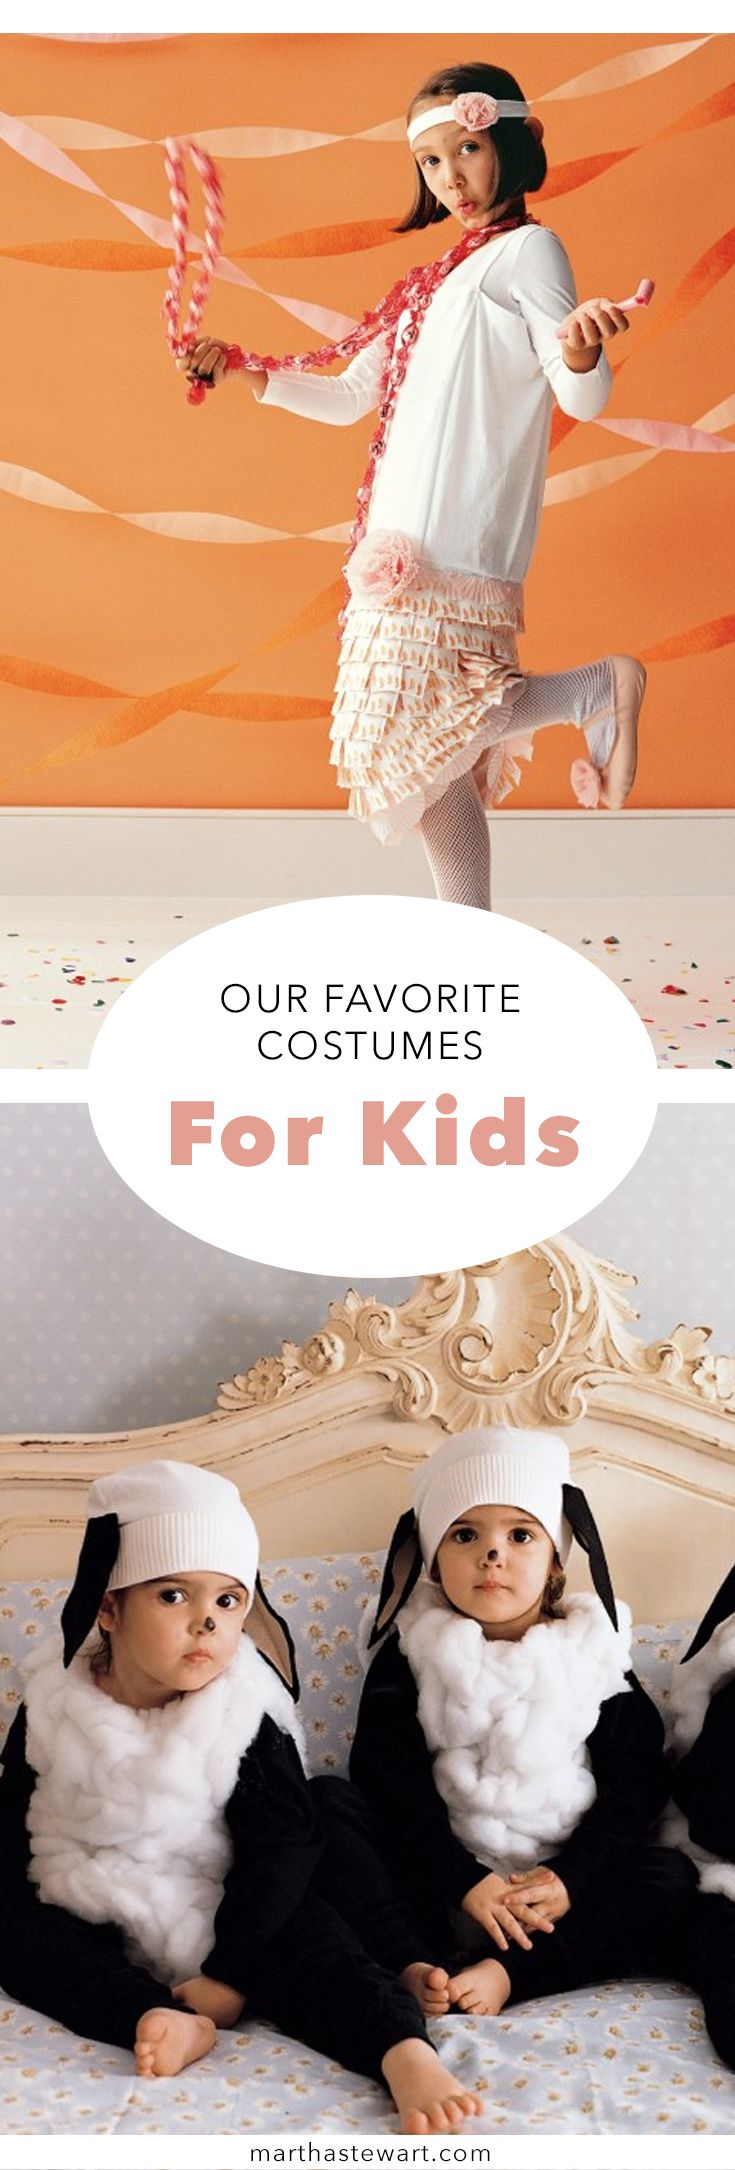 For adults, half the fun of Halloween is seeing how excited kids get about their costumes. The other half is seeing how cute they look! Not only do these 10 projects maximize the cute factor, but because they're DIY, your little trick-or-treater is guaranteed a one-of-a-kind costume.